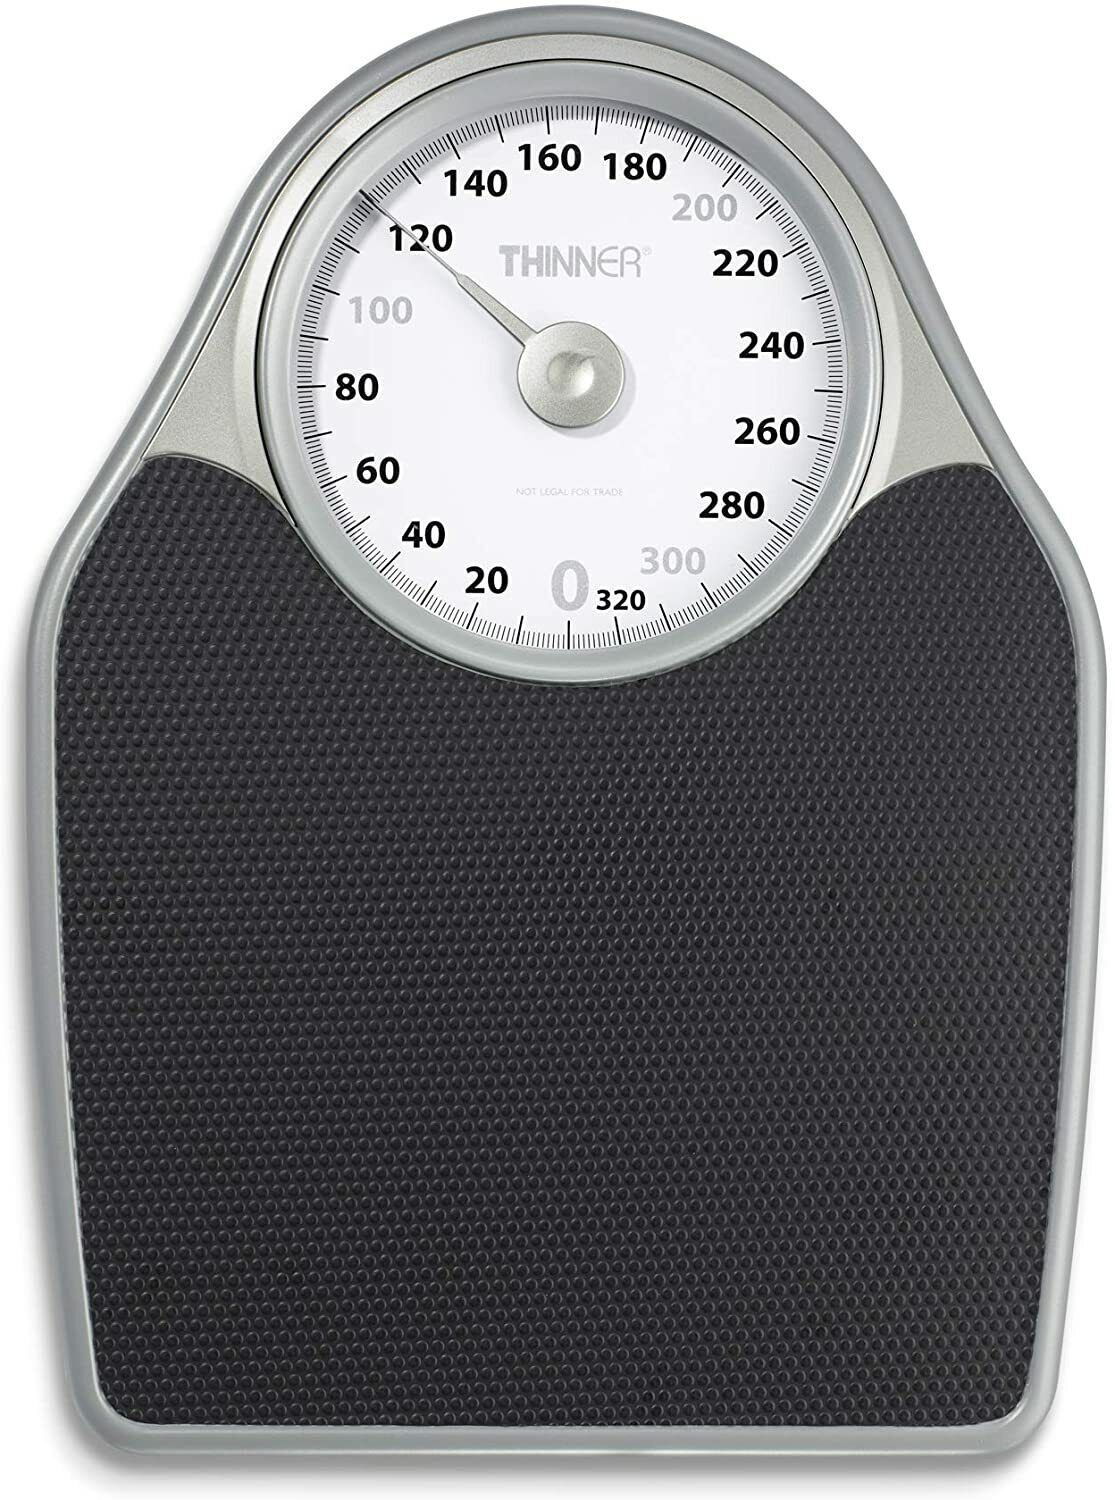 Thinner Extra-Large Dial Analog Precision Bathroom Scale, An